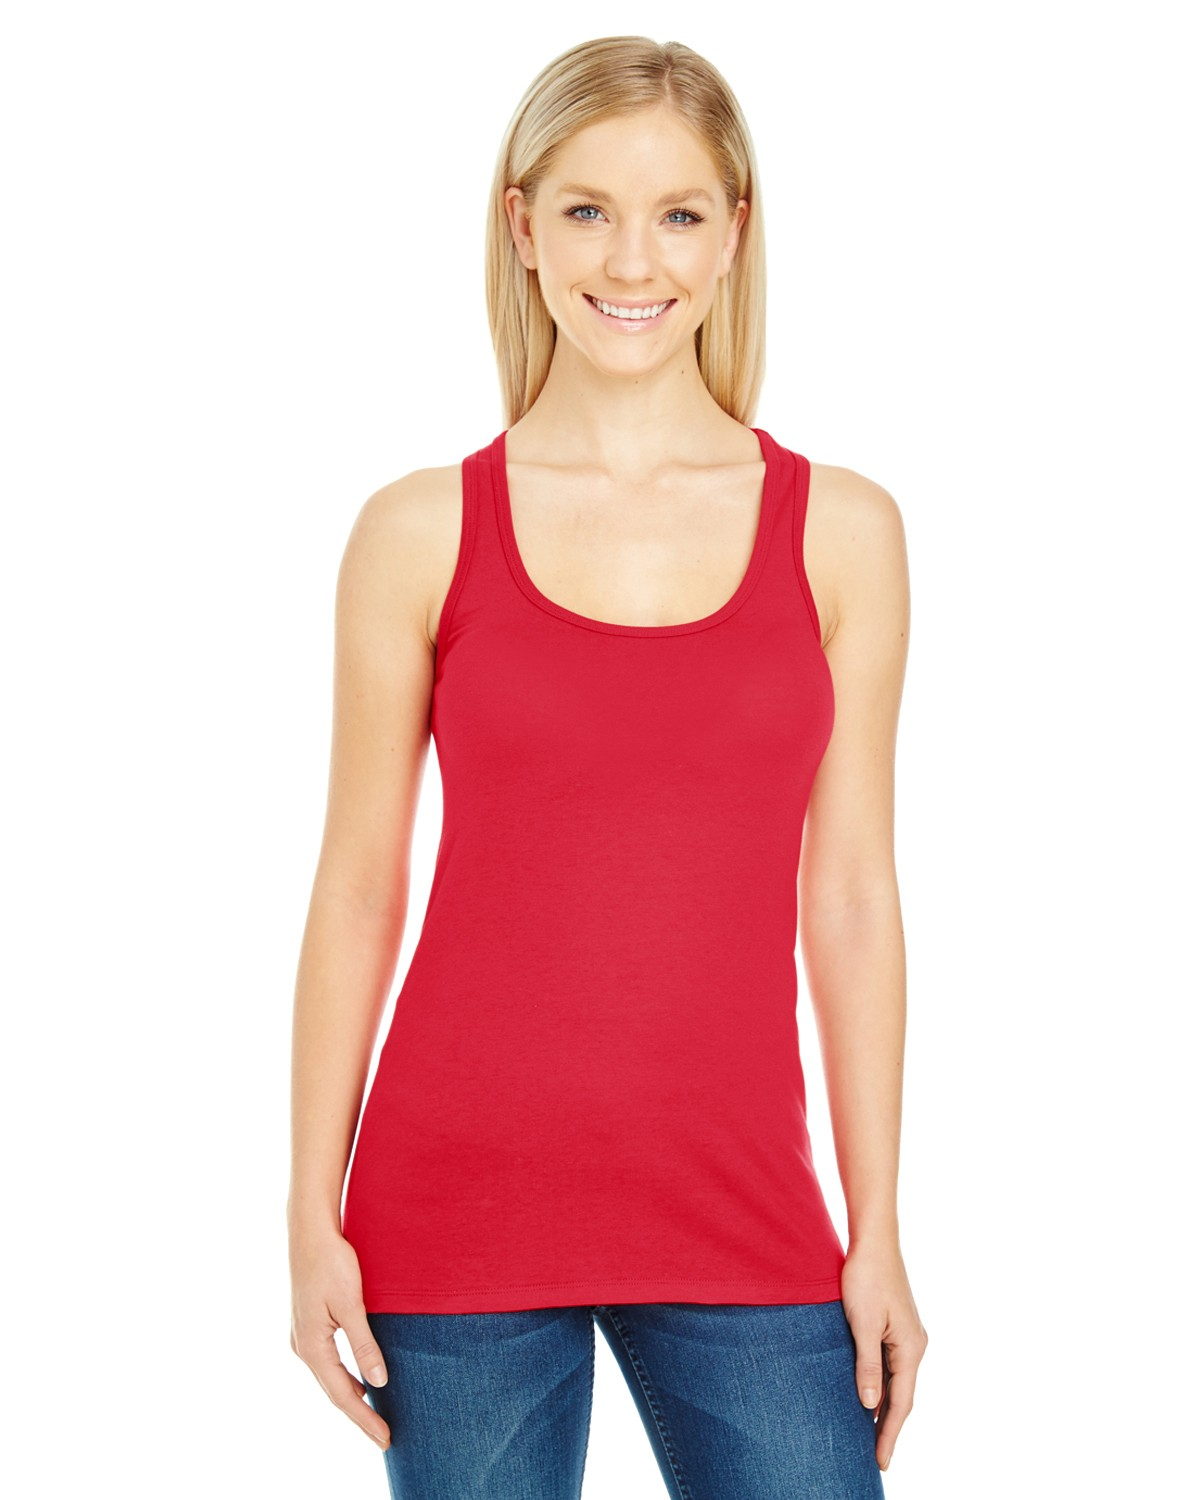 220RT Threadfast Apparel ACTIVE RED